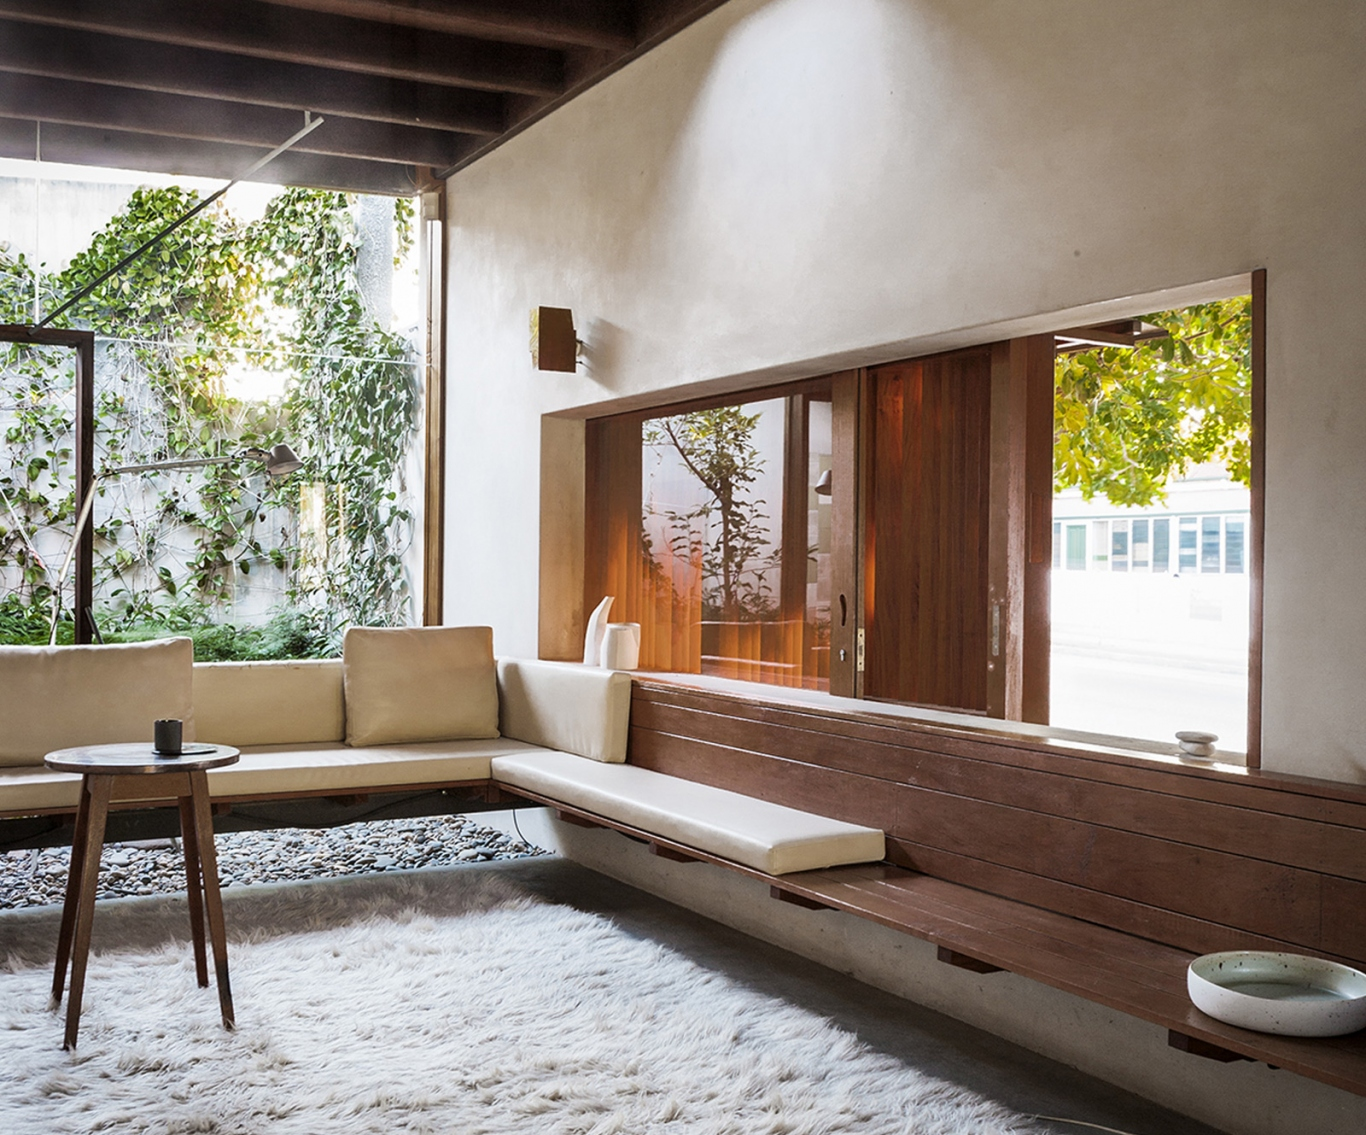 Interior of the D House in  Brisbane's New Farm,showing thick rug, wooden bench seats and big sunlit windows